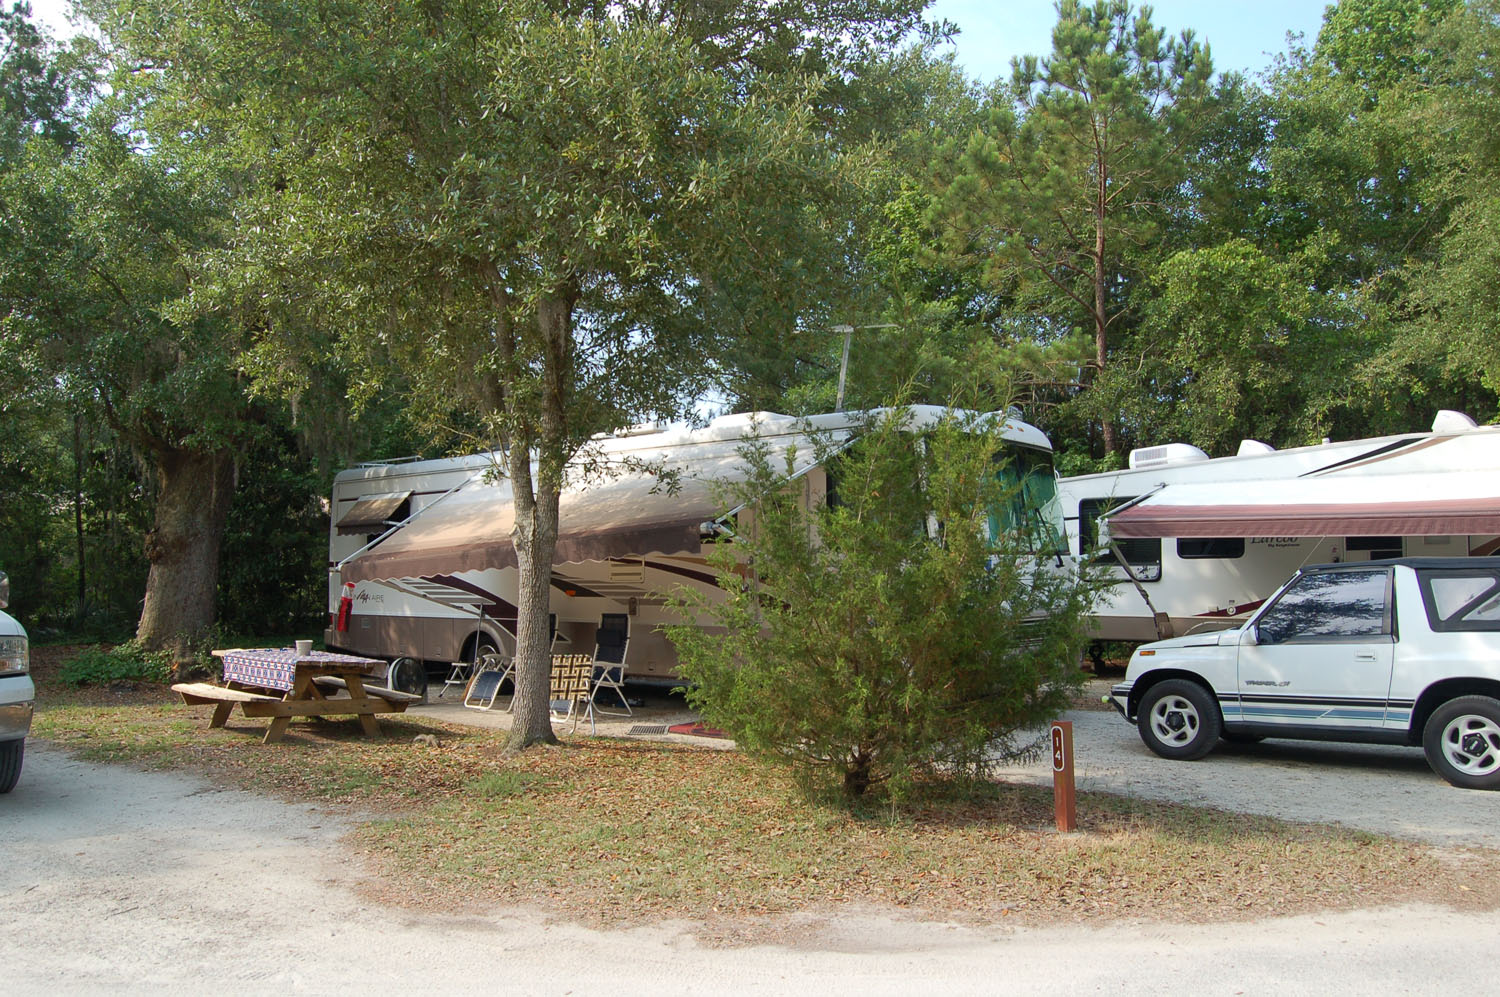 Image of campsite #14 at James Island County Park